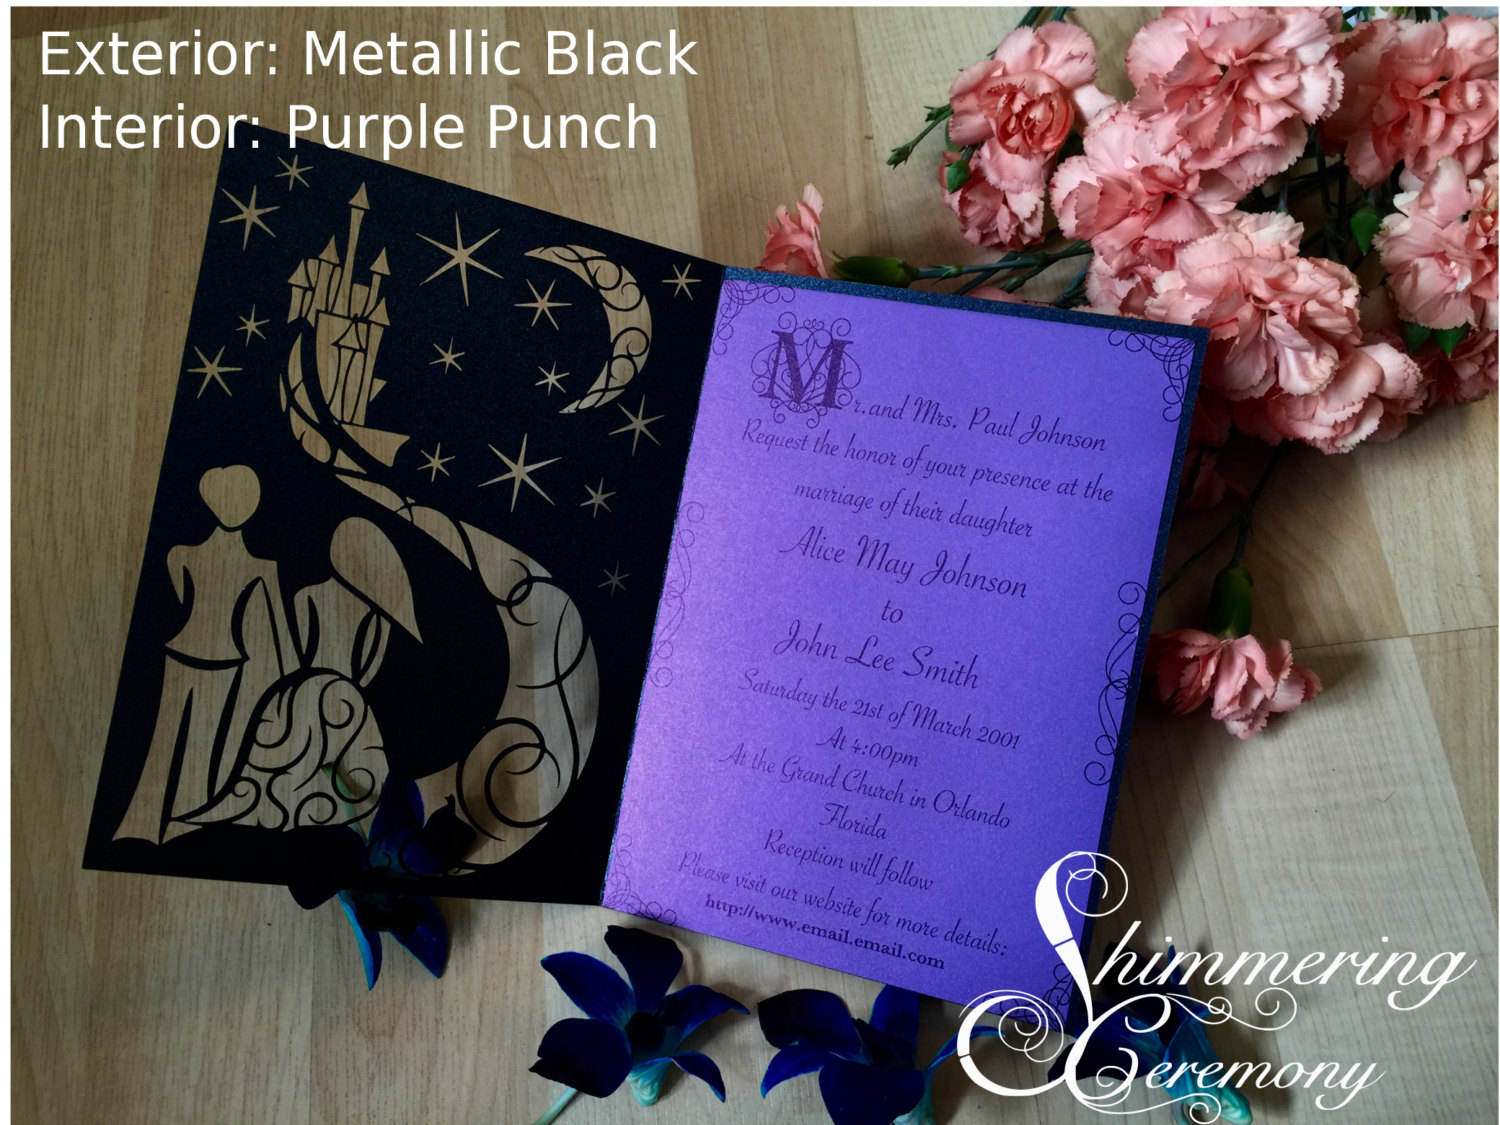 Fairytale Castle Laser Cut Invitation | Shimmering Ceremony